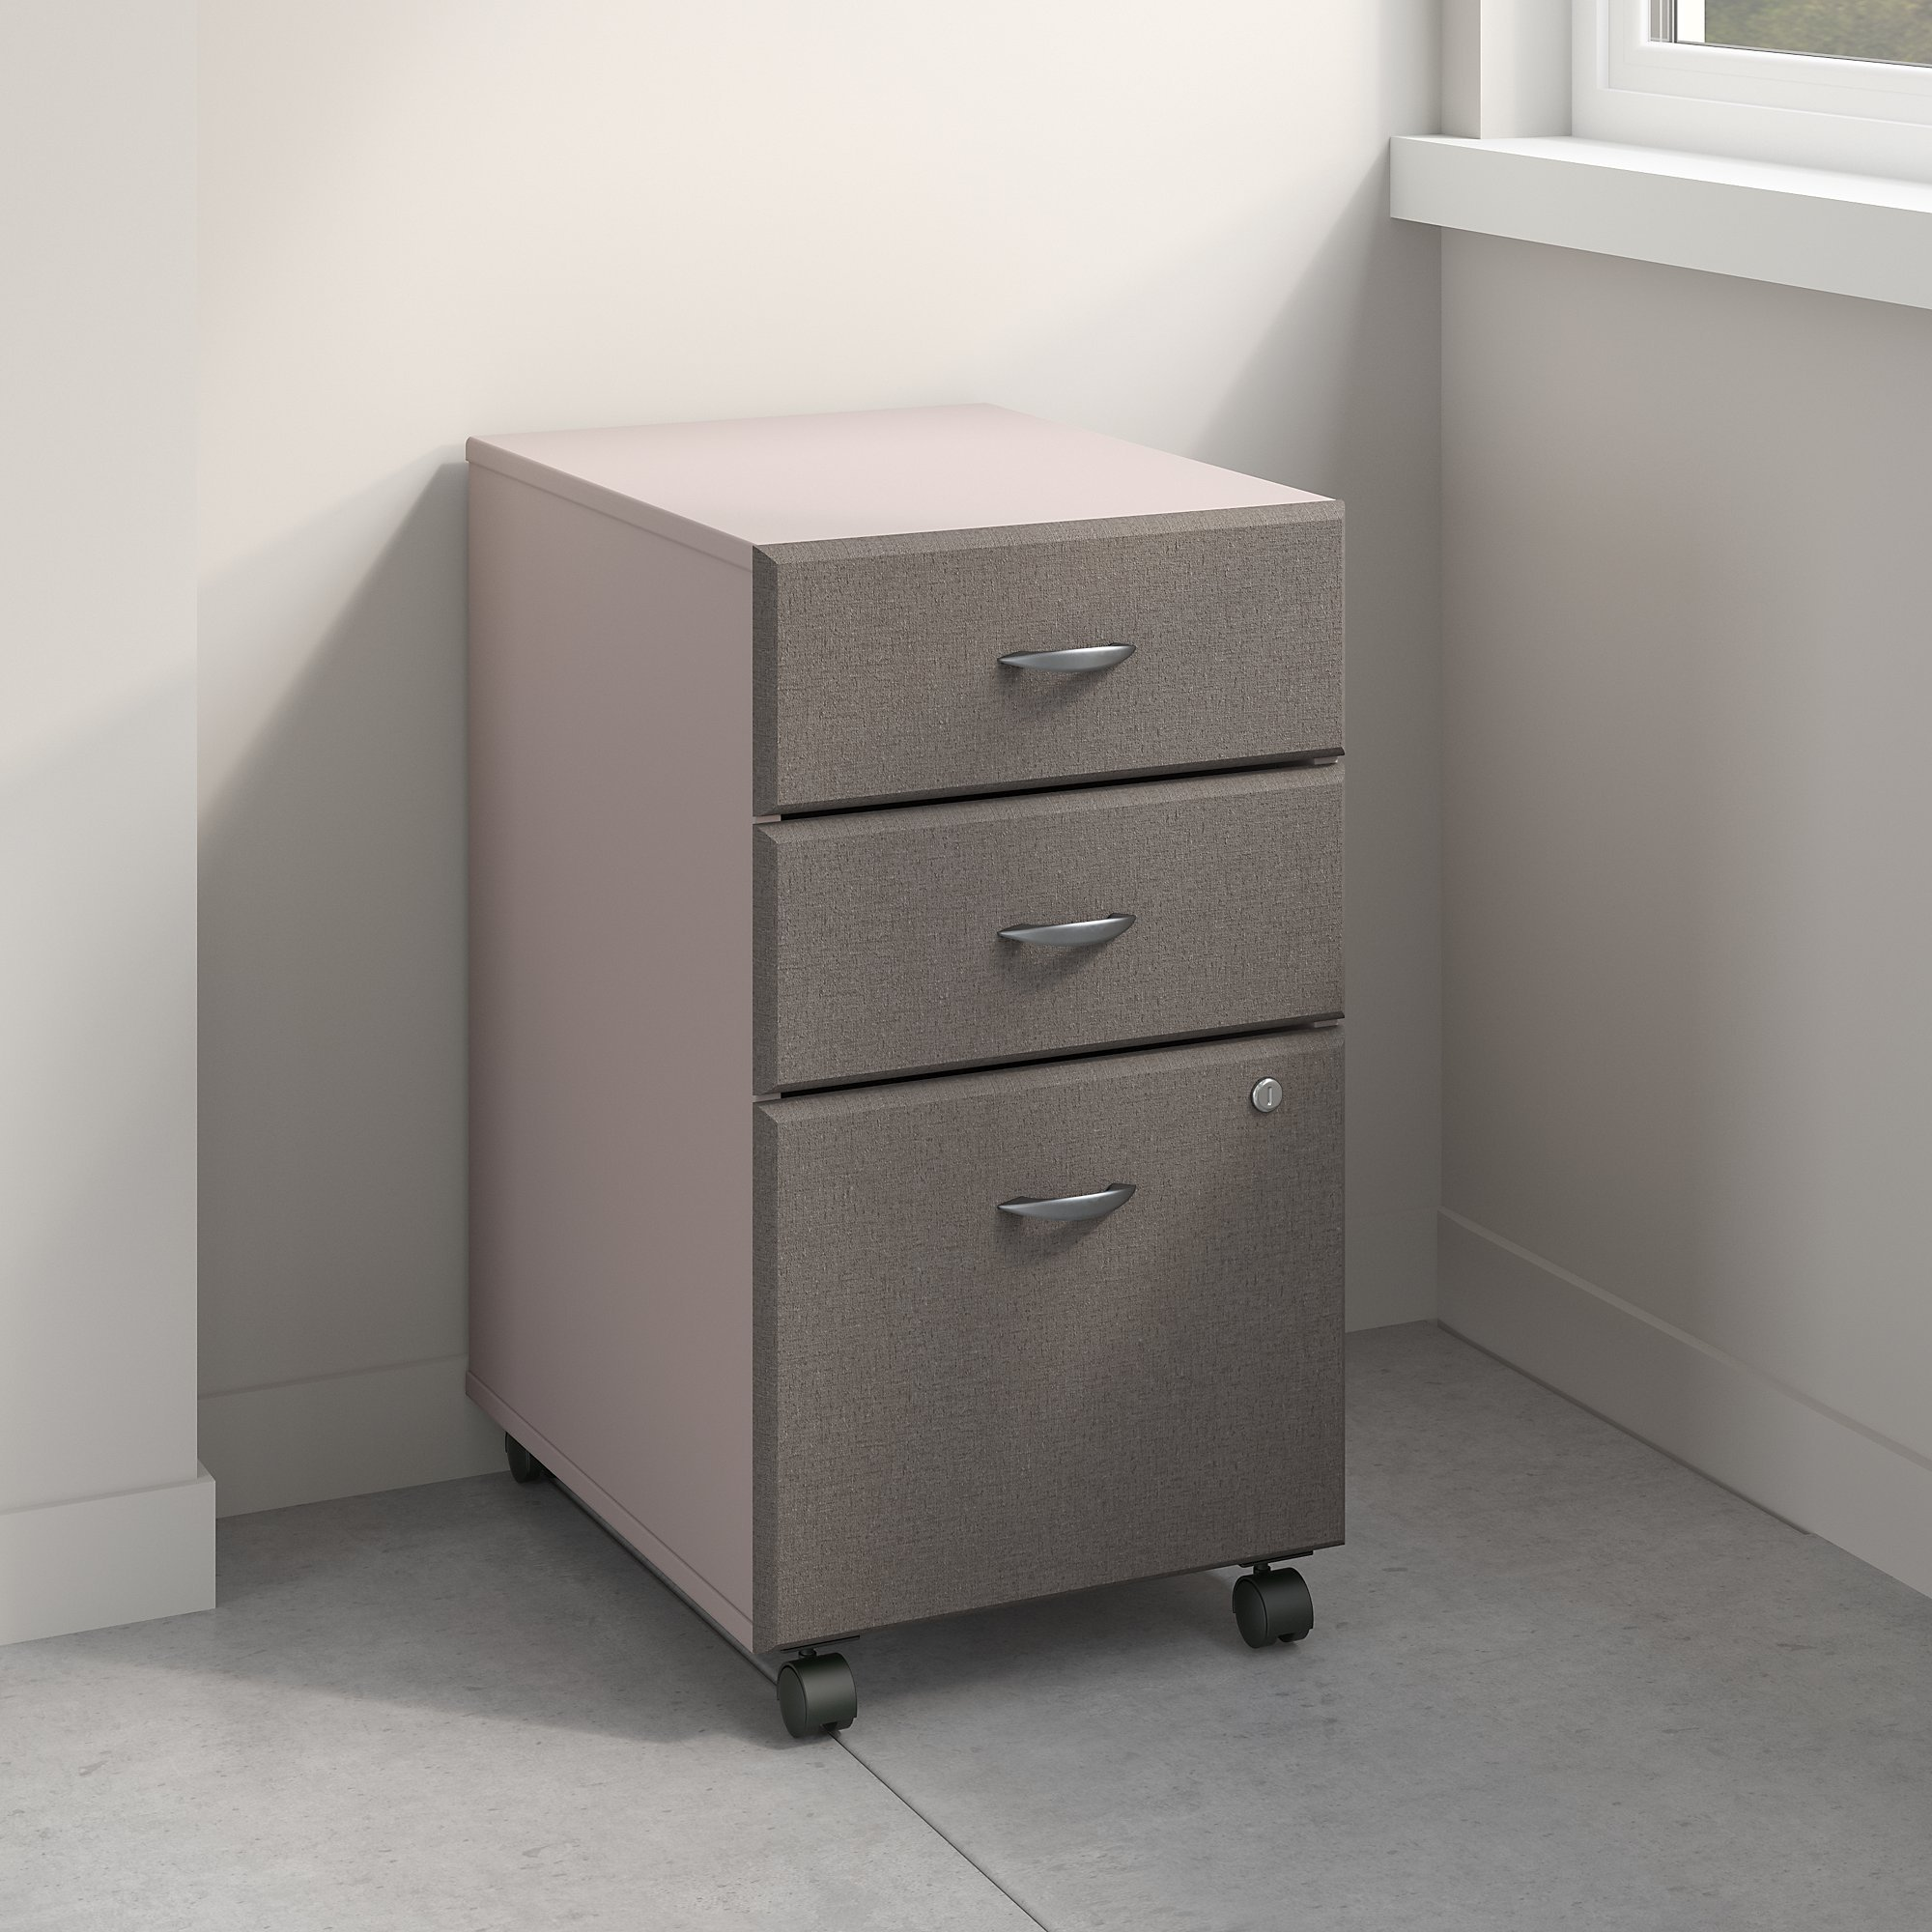 Bush Business Furniture WC14553PSU Series A 3 Drawer Mobile File Cabinet, Pewter by Bush Business Furniture